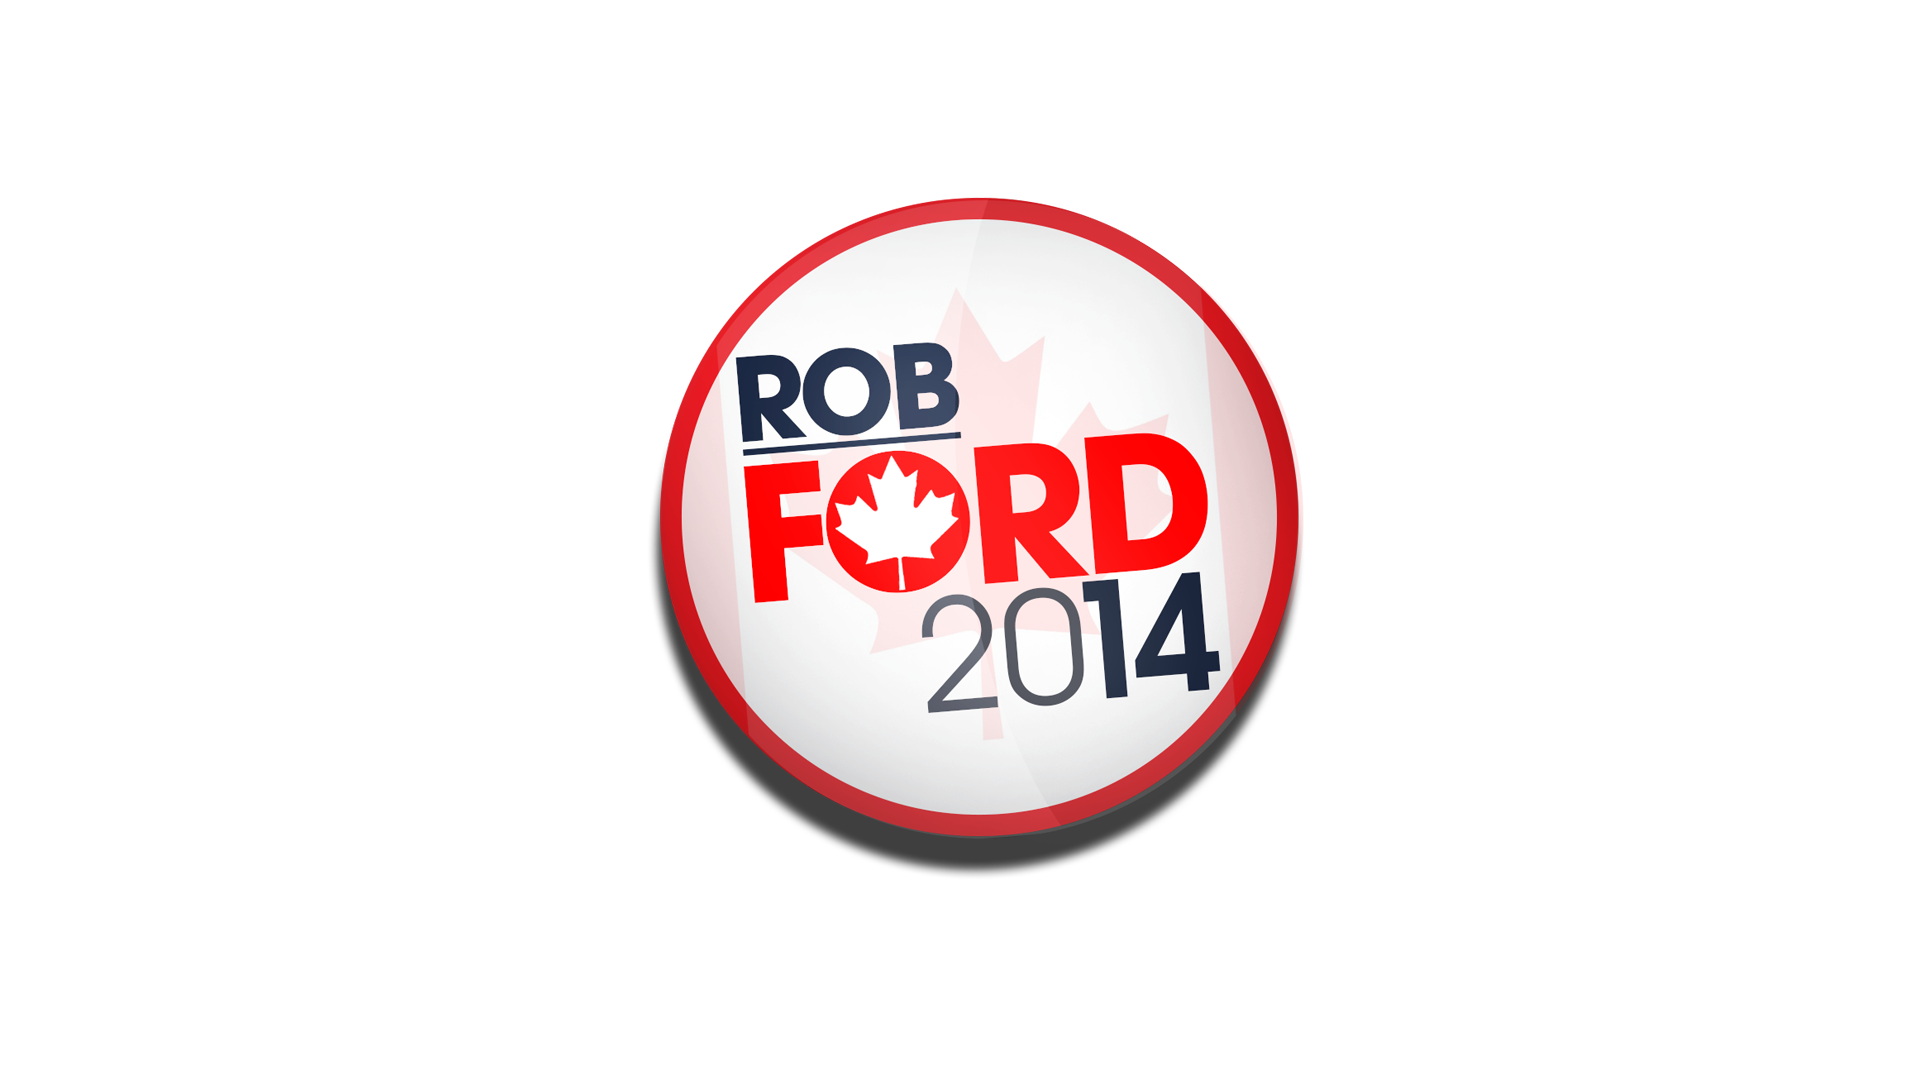 ROB_FORD_LOGO_Keyable.png